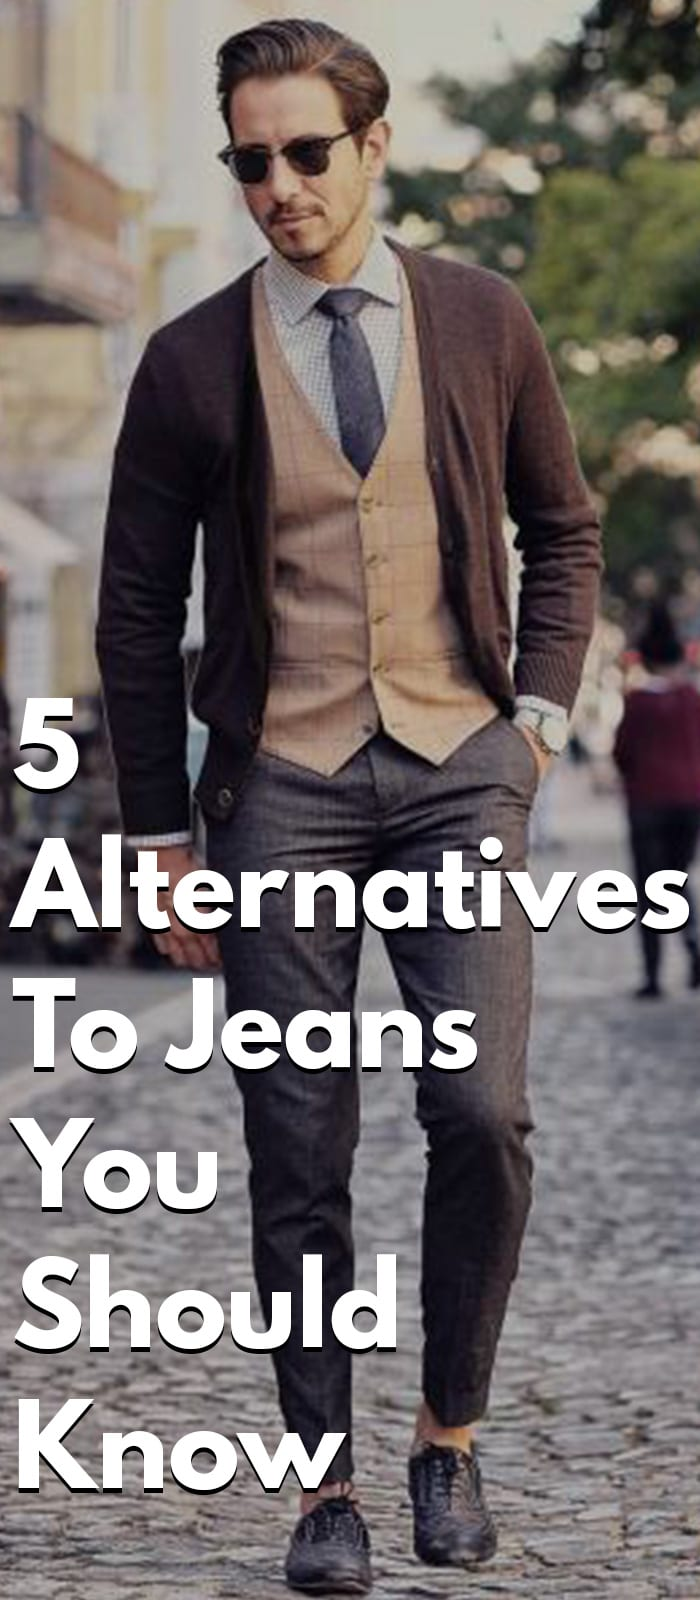 5 Alternatives To Jeans You Should Know